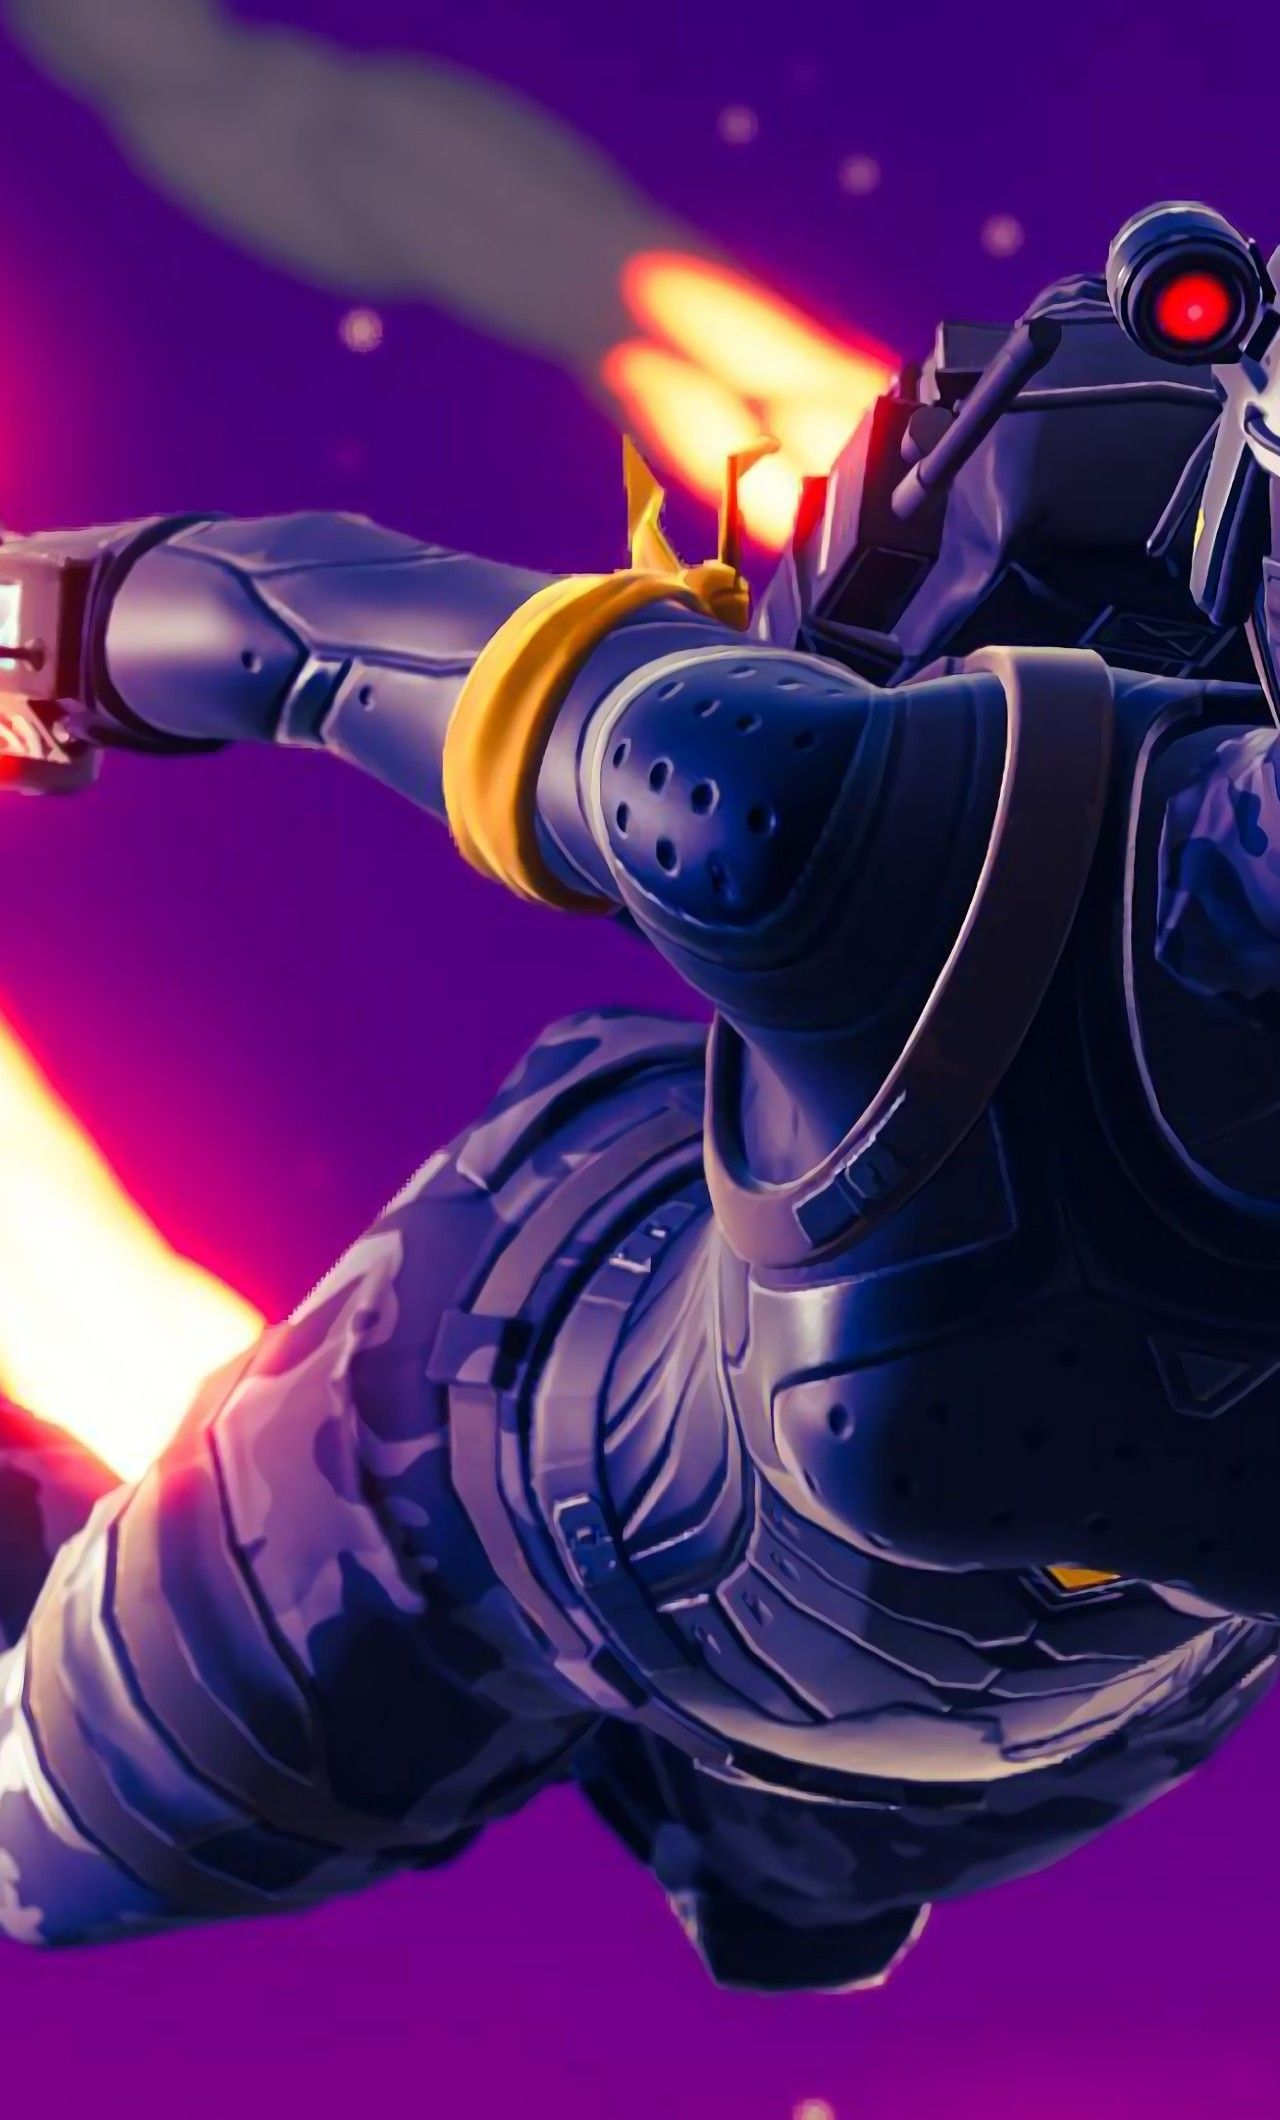 HD Fortnite wallpapers in 2019 Gaming wallpapers, System